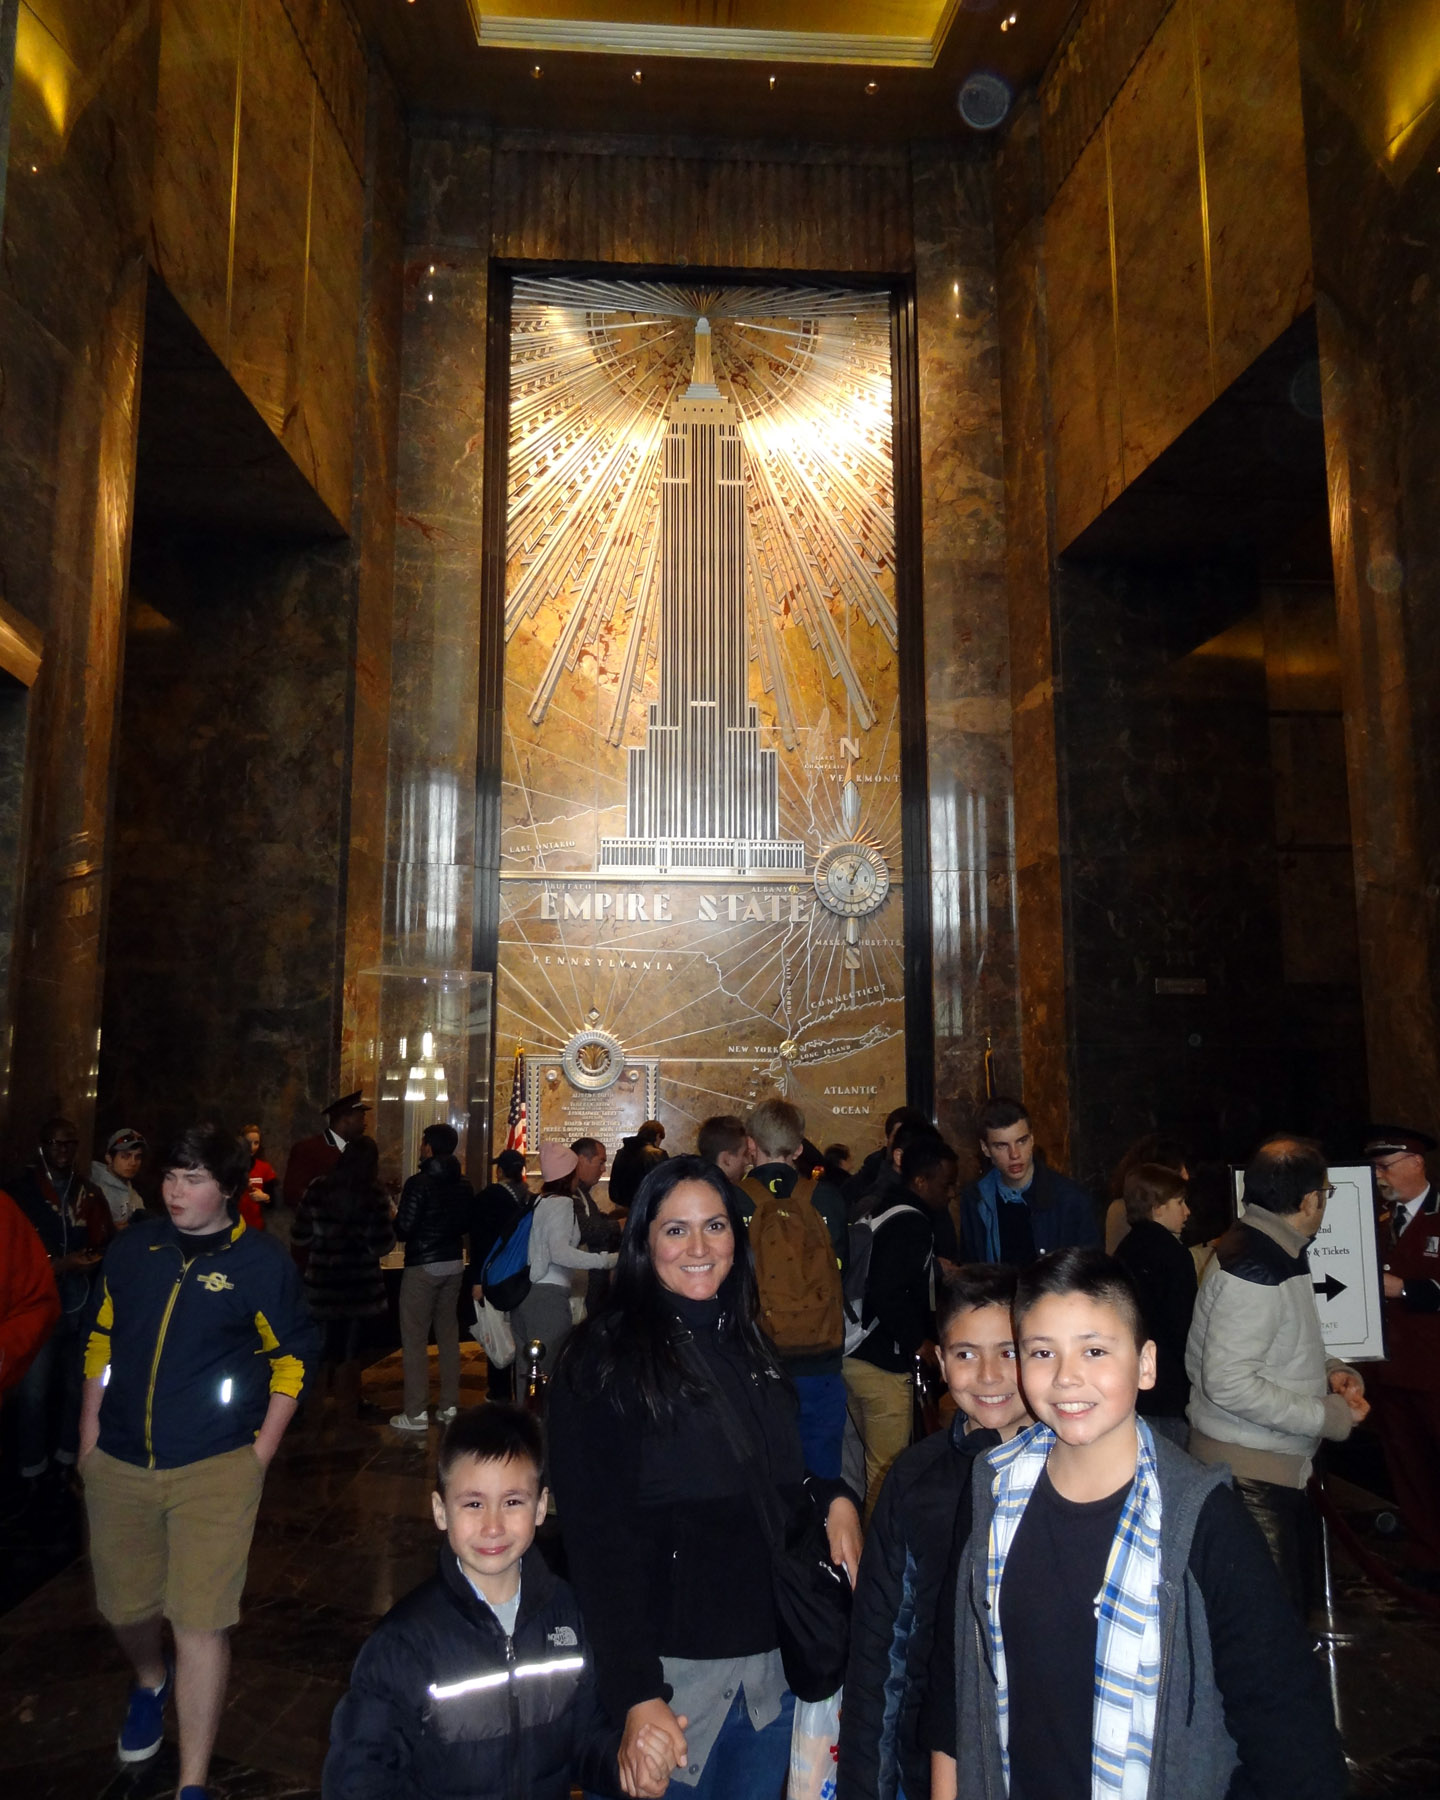 Empire State Building, New York, USA 2014